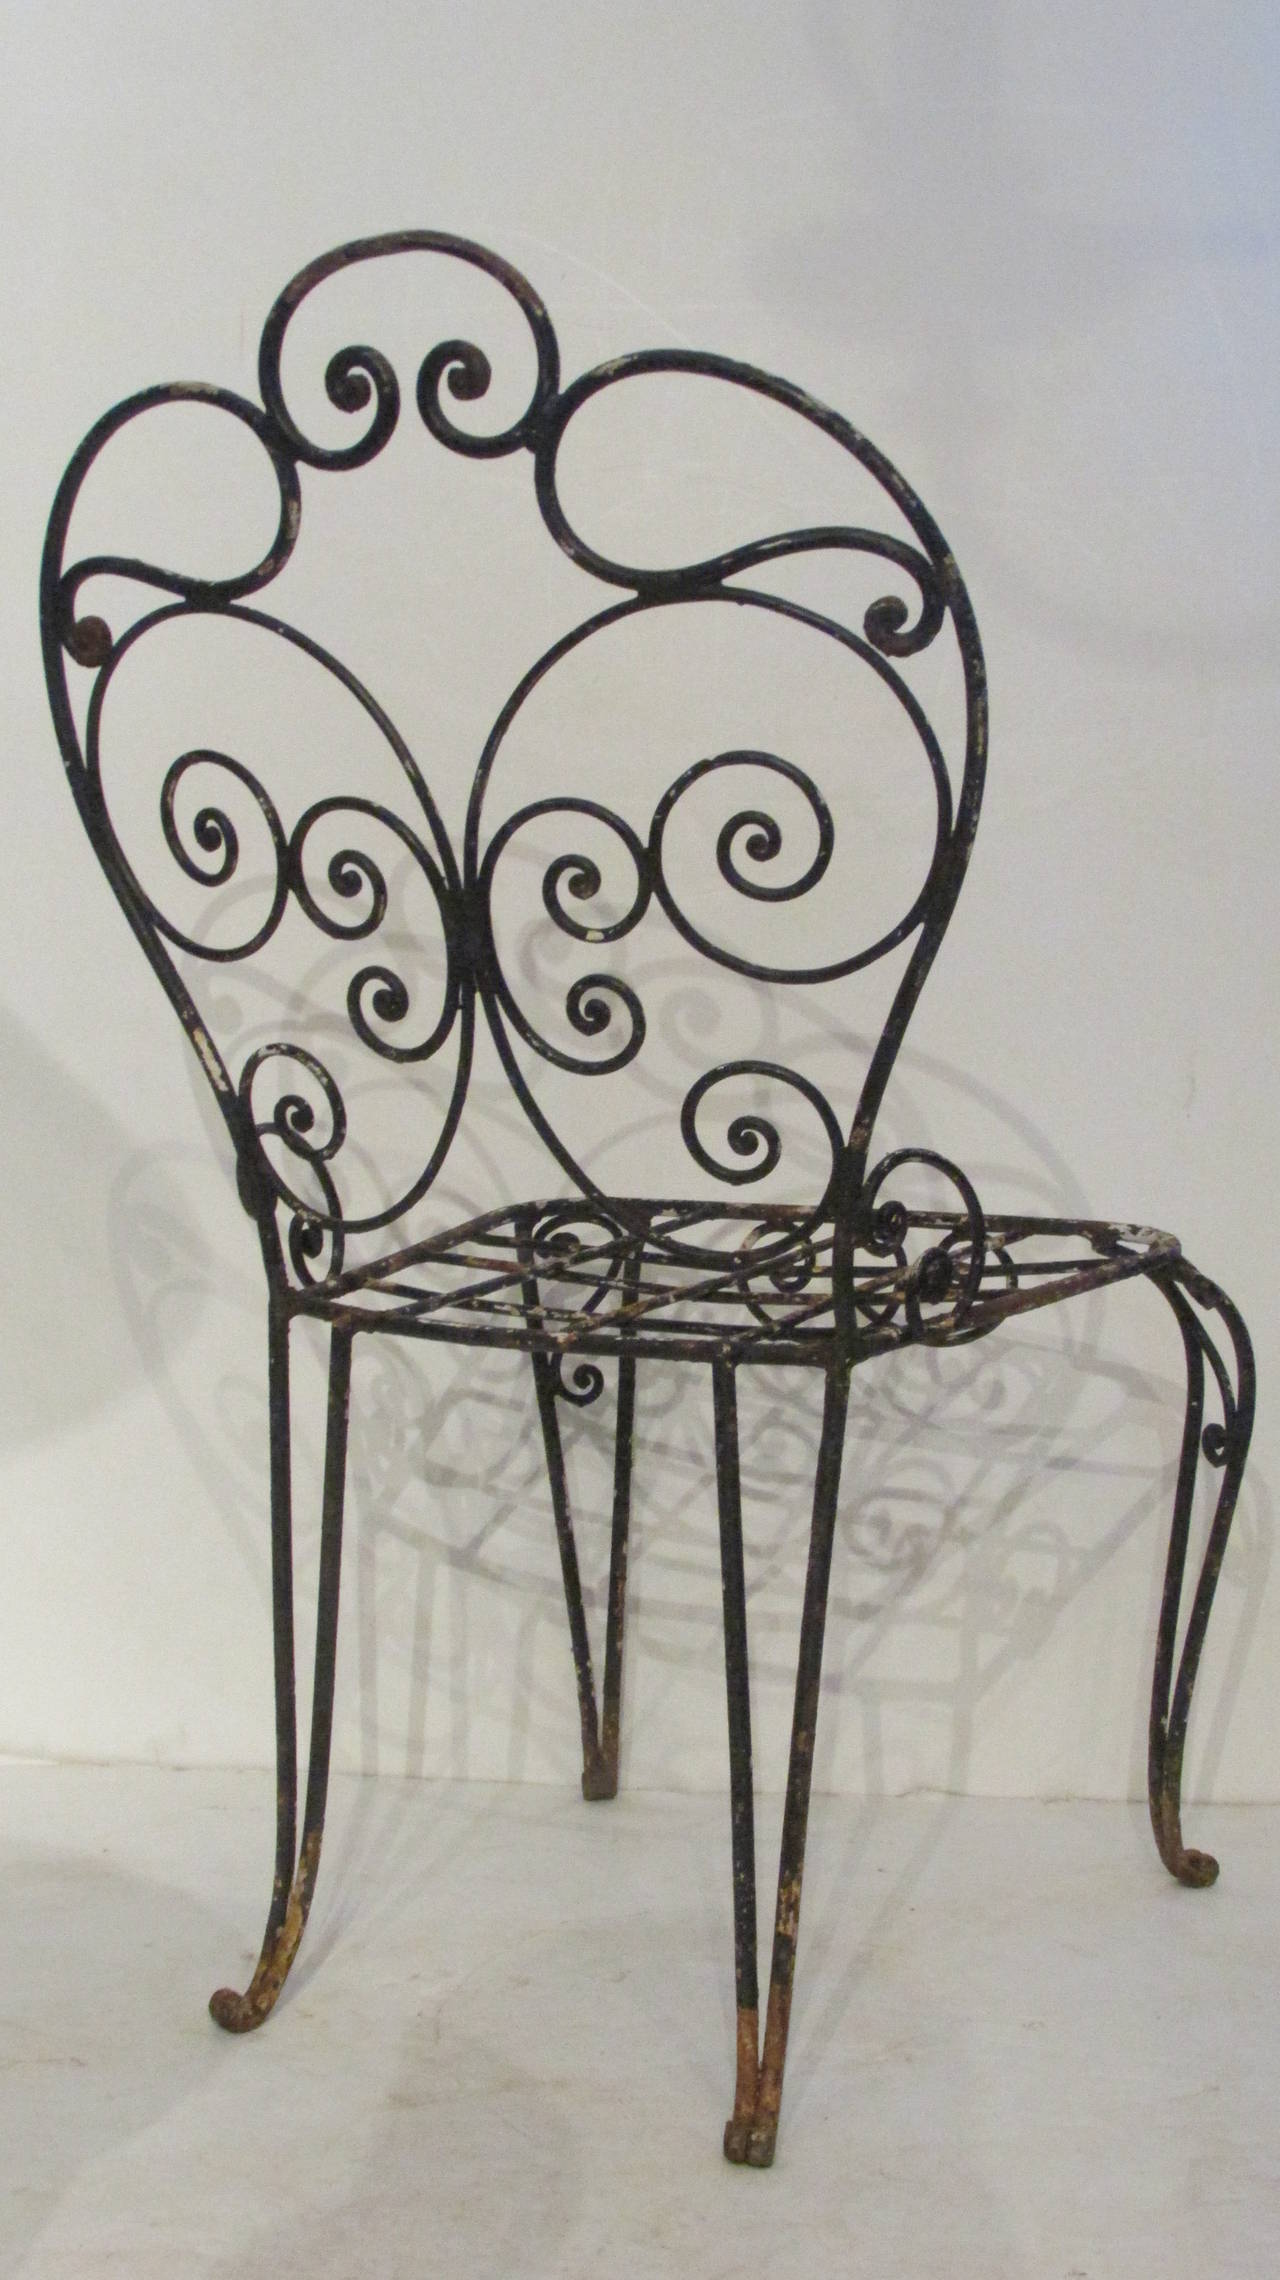 1940s French Iron Garden Chair In Excellent Condition For Sale In Rochester, NY